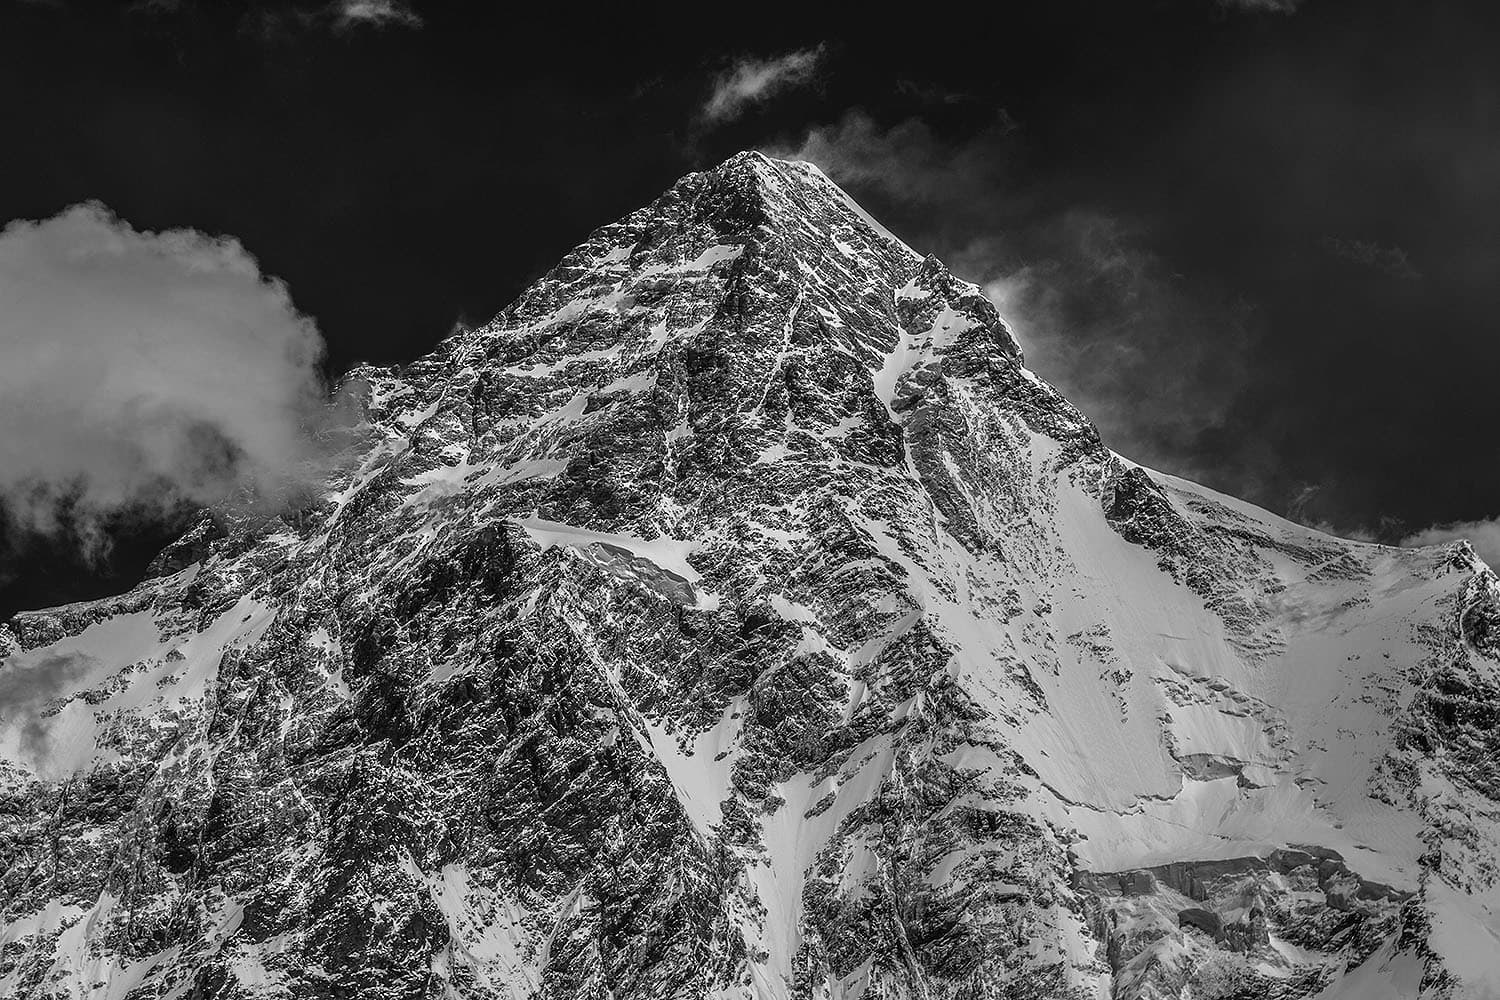 A summit view of K2.